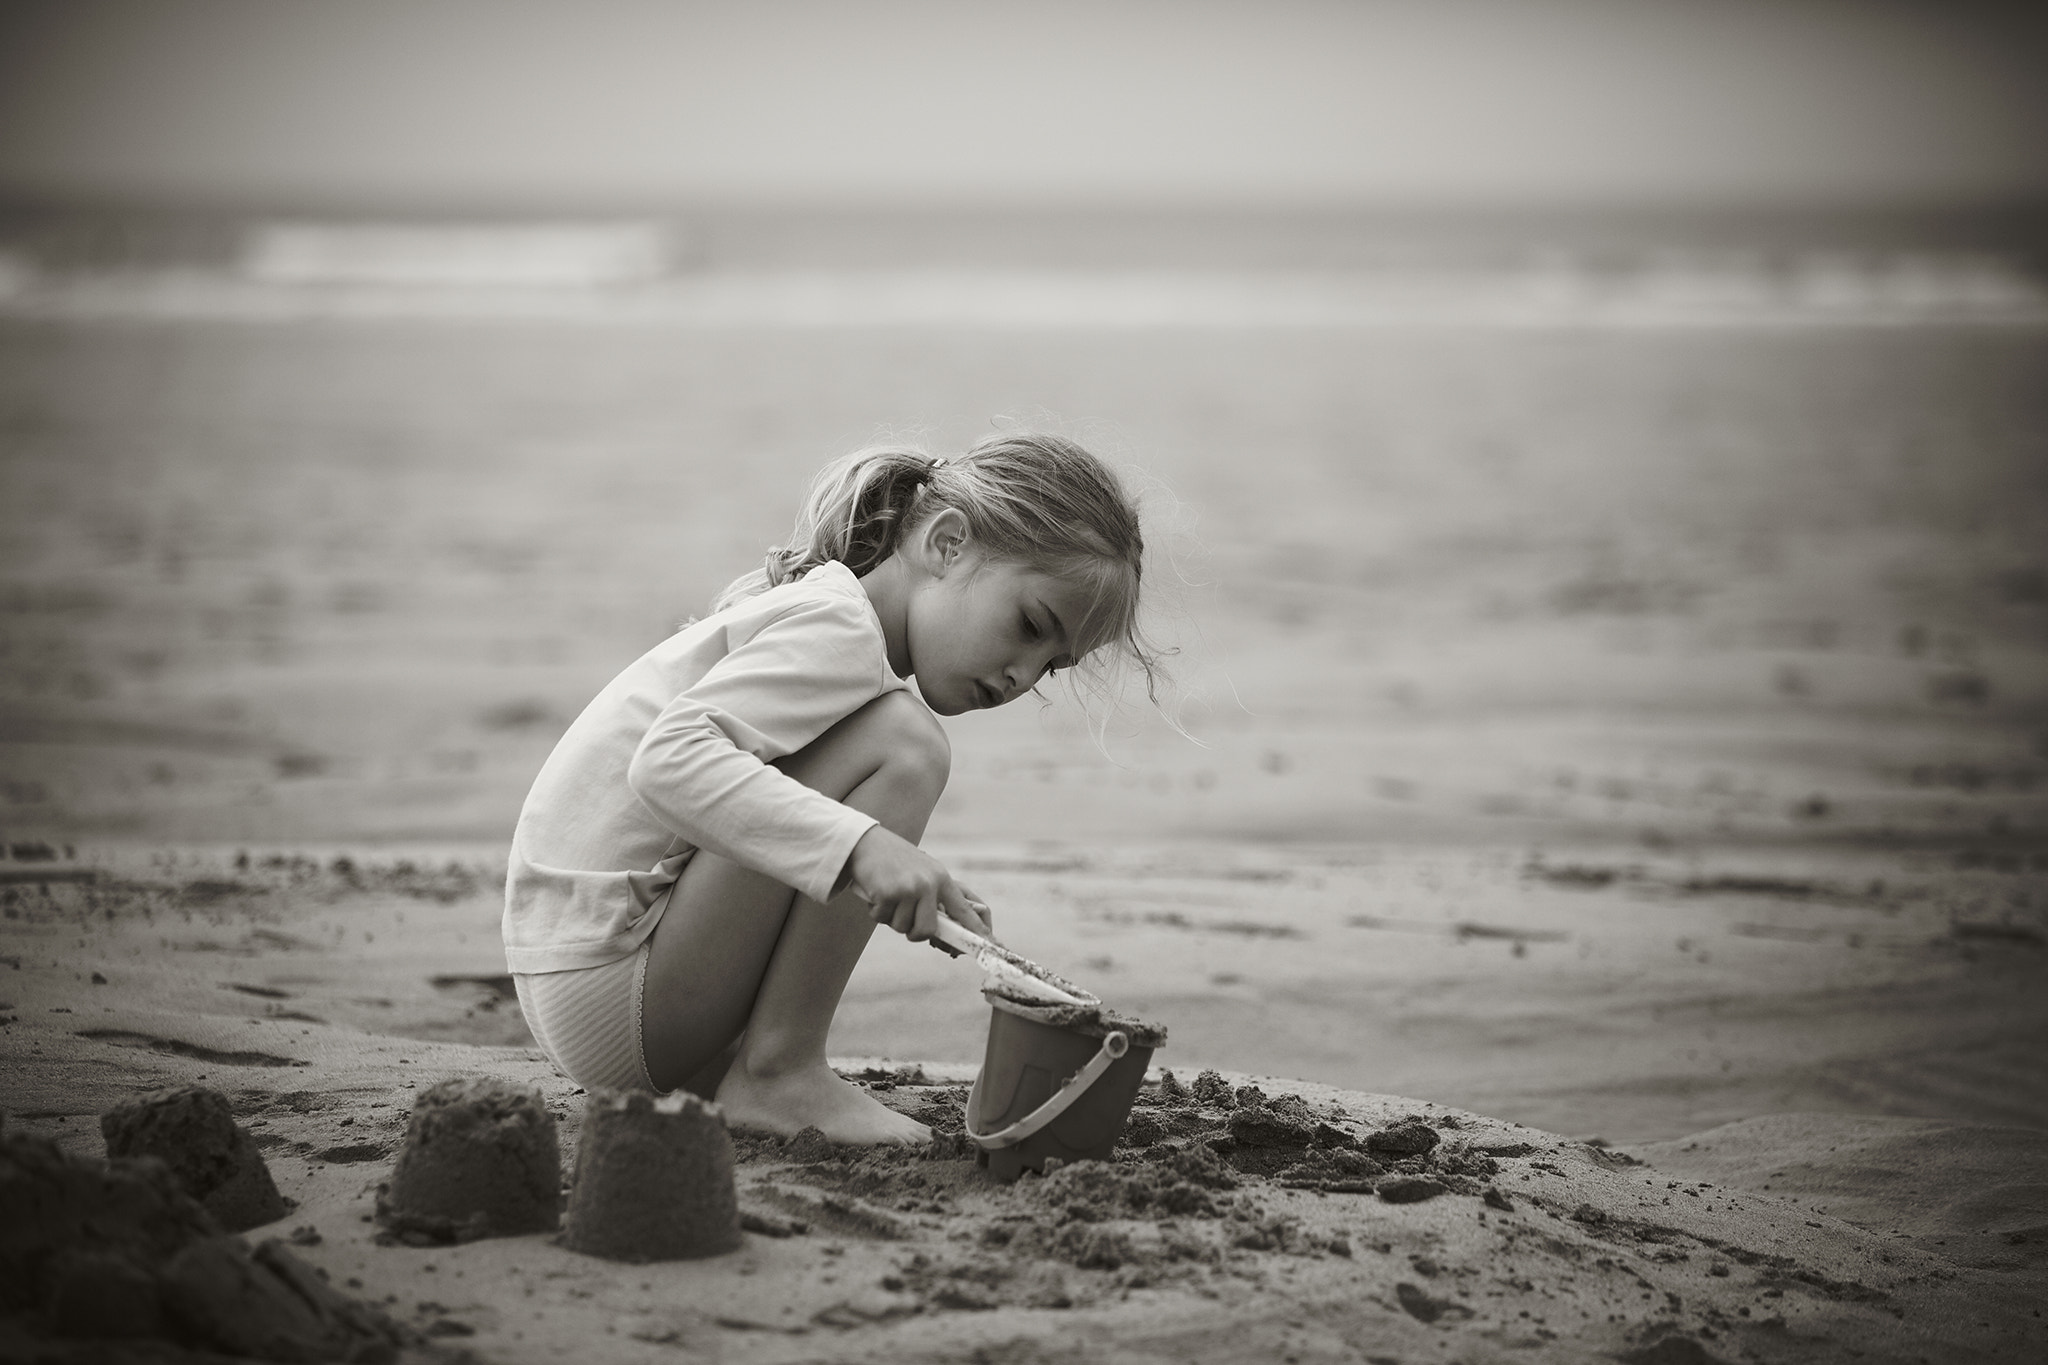 Photograph Sandcastles by Ian Boichat on 500px